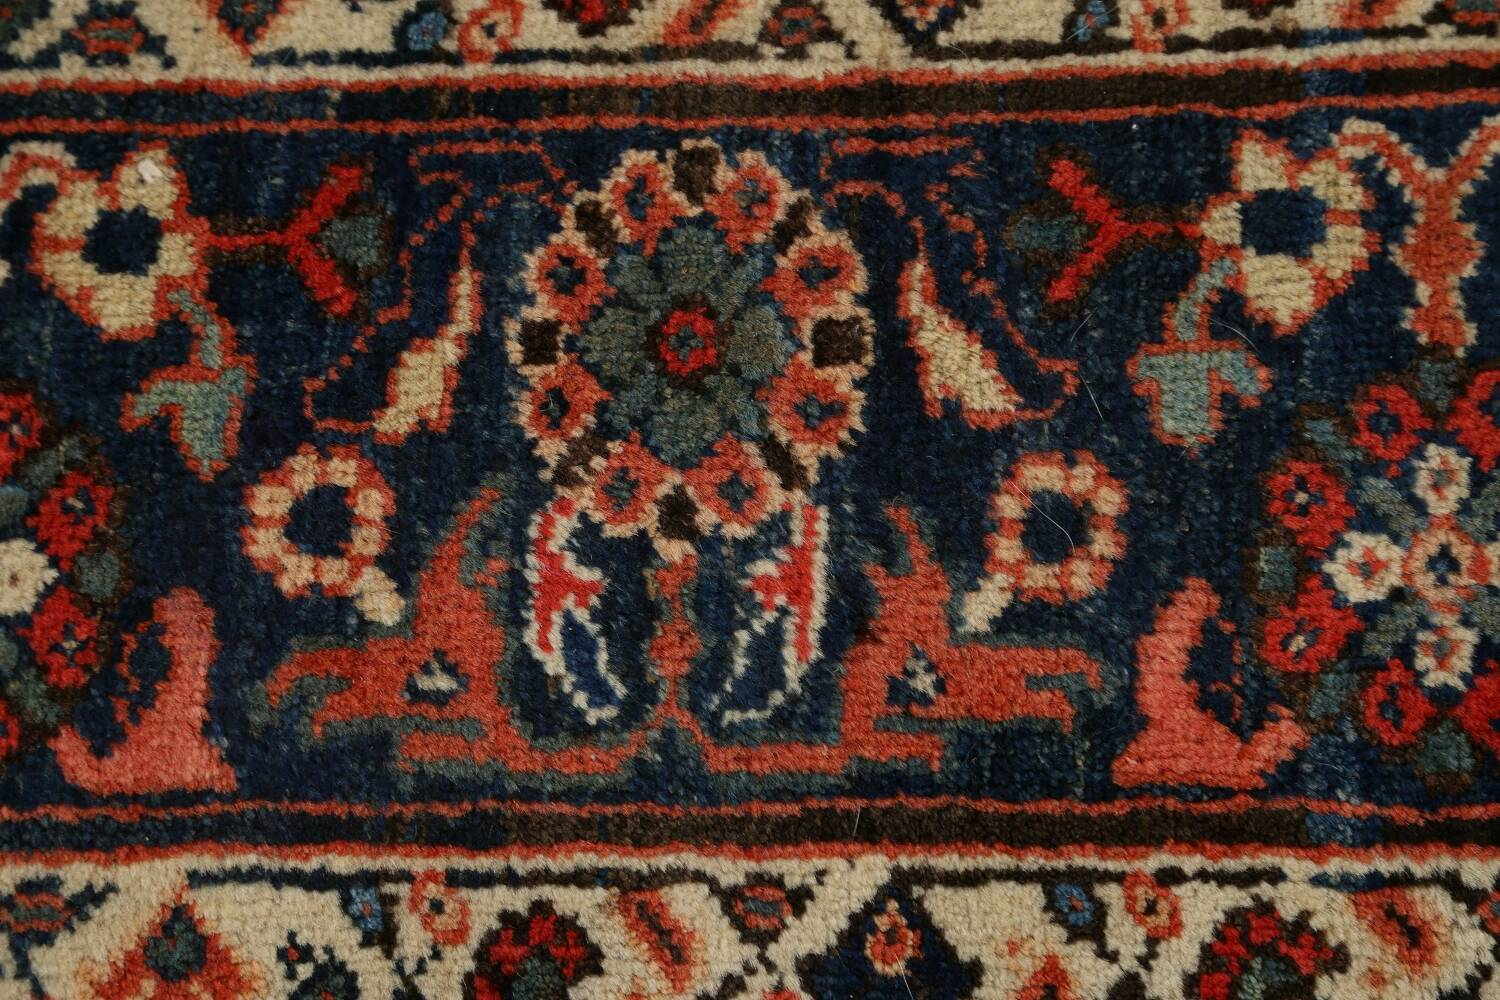 Pre-1900 Antique Vegetable Dye Sultanabad Persian Area Rug 10x14 image 9